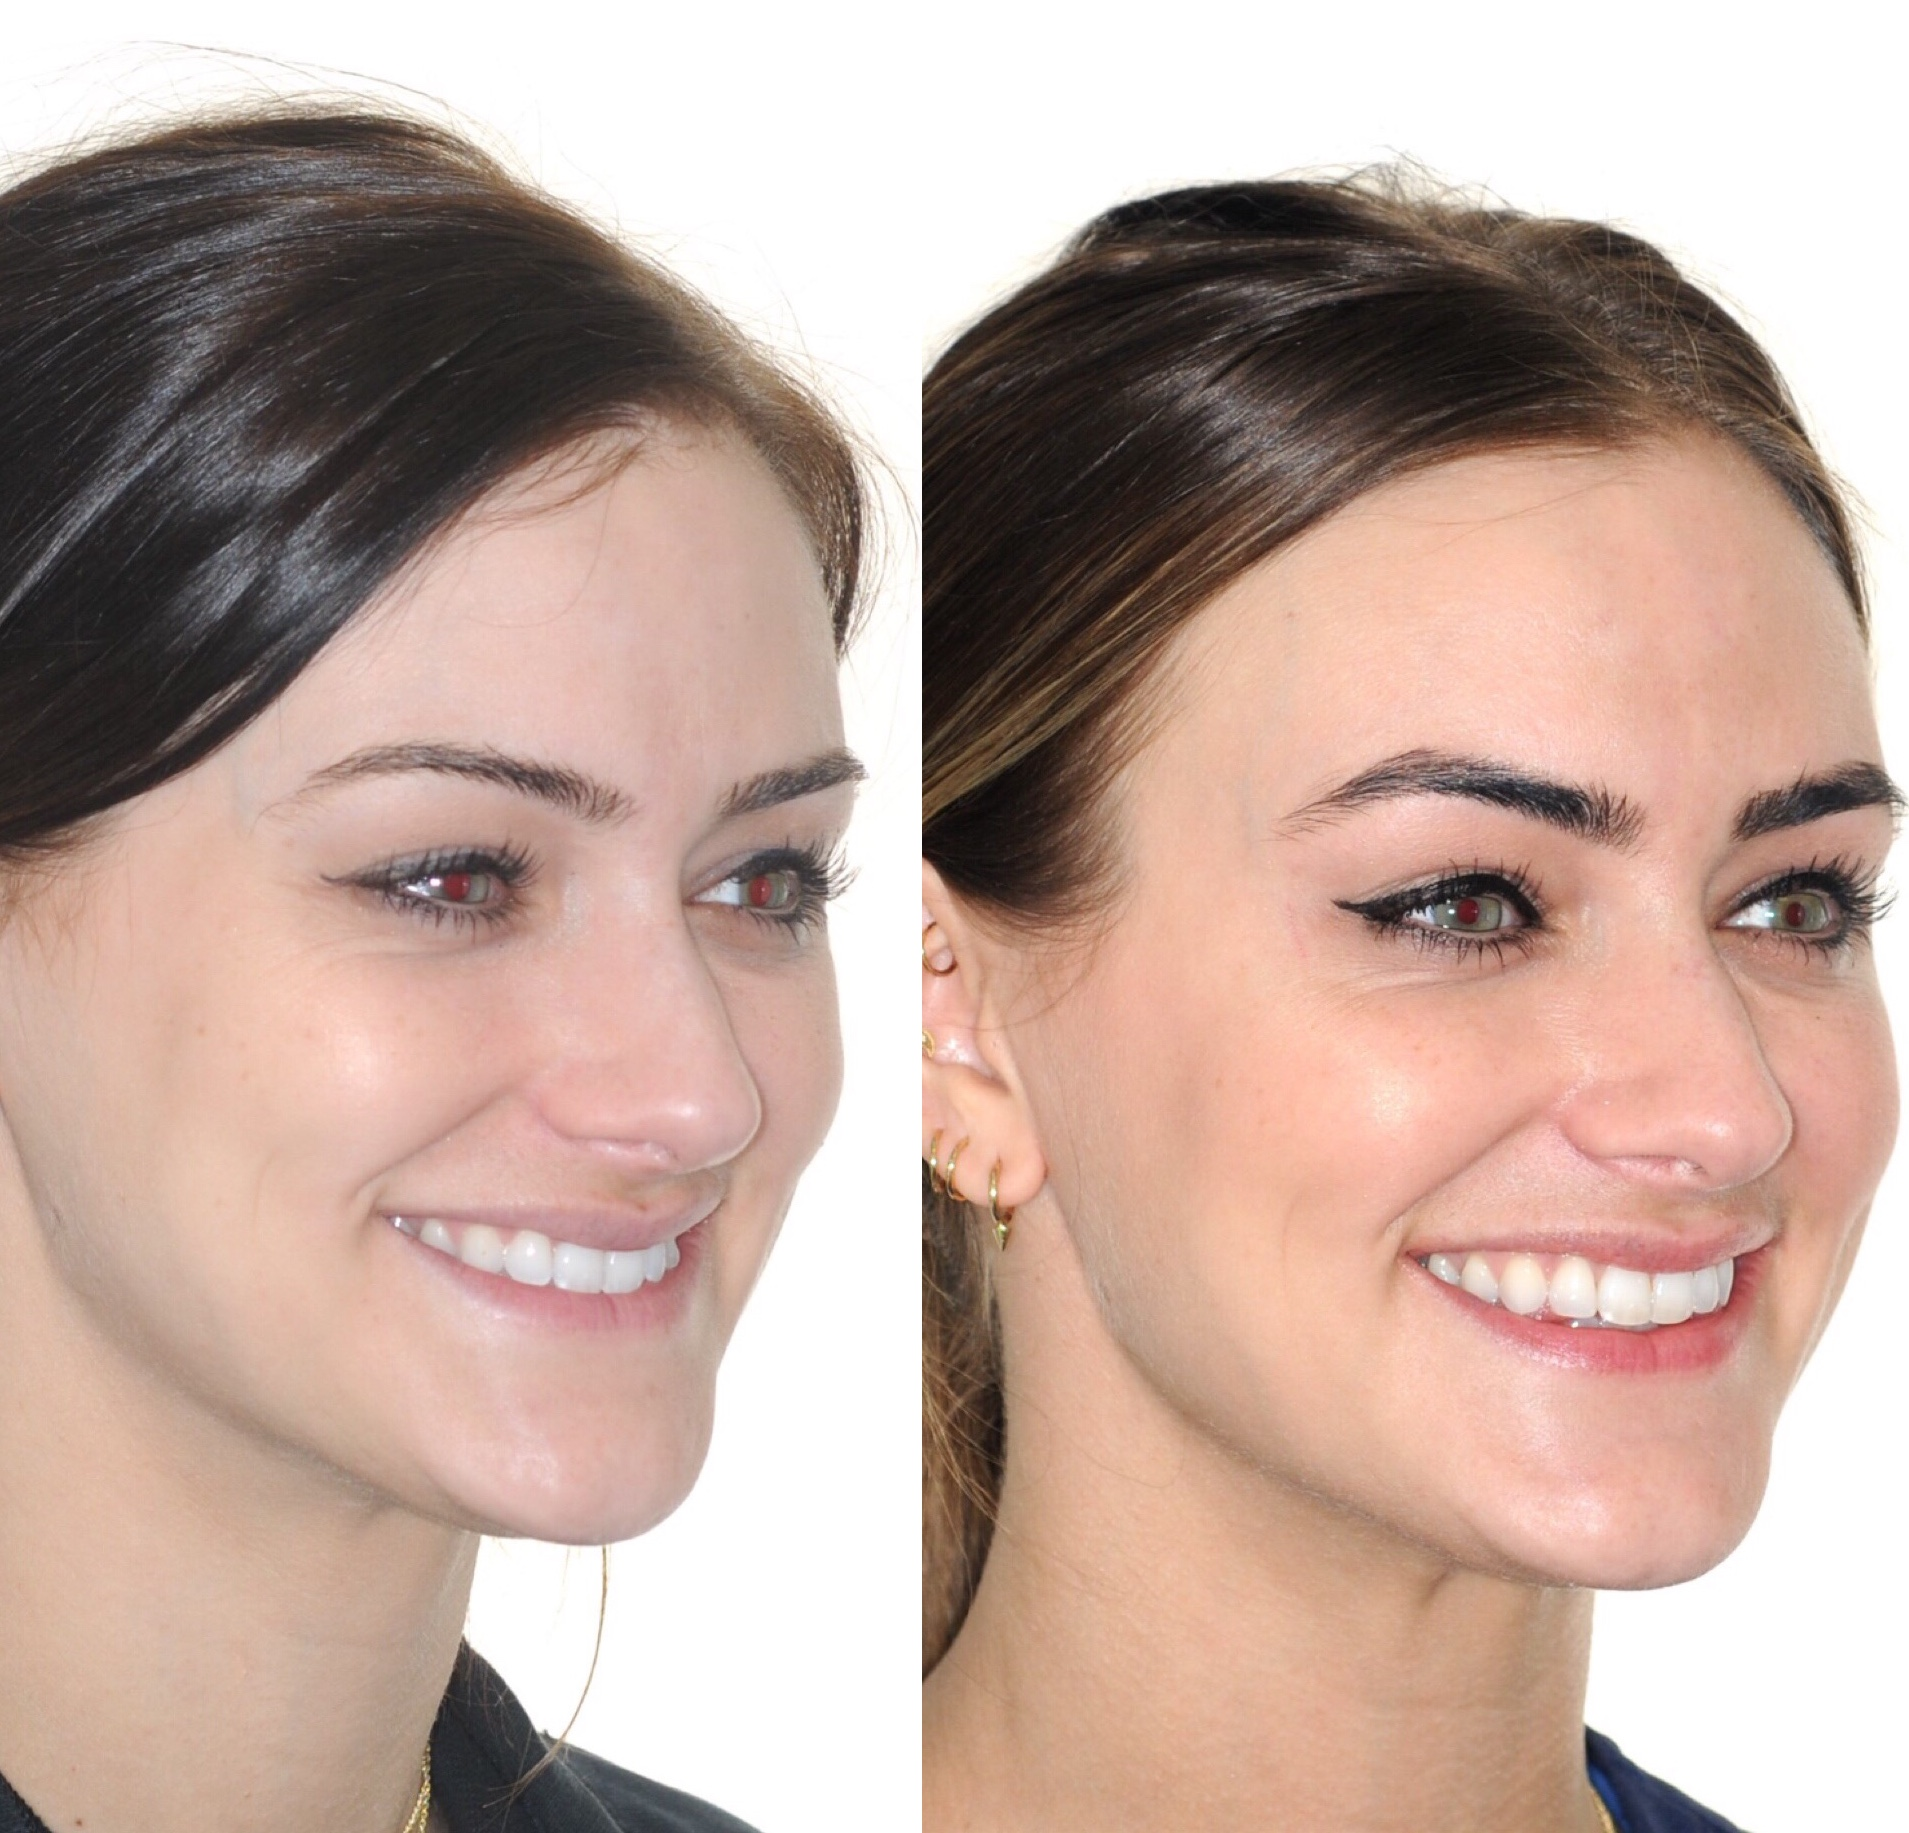 Before & After: In these images, you can clearly see that this patient's smile is much wider and her jaw has moved forward creating a more youthful appearance.